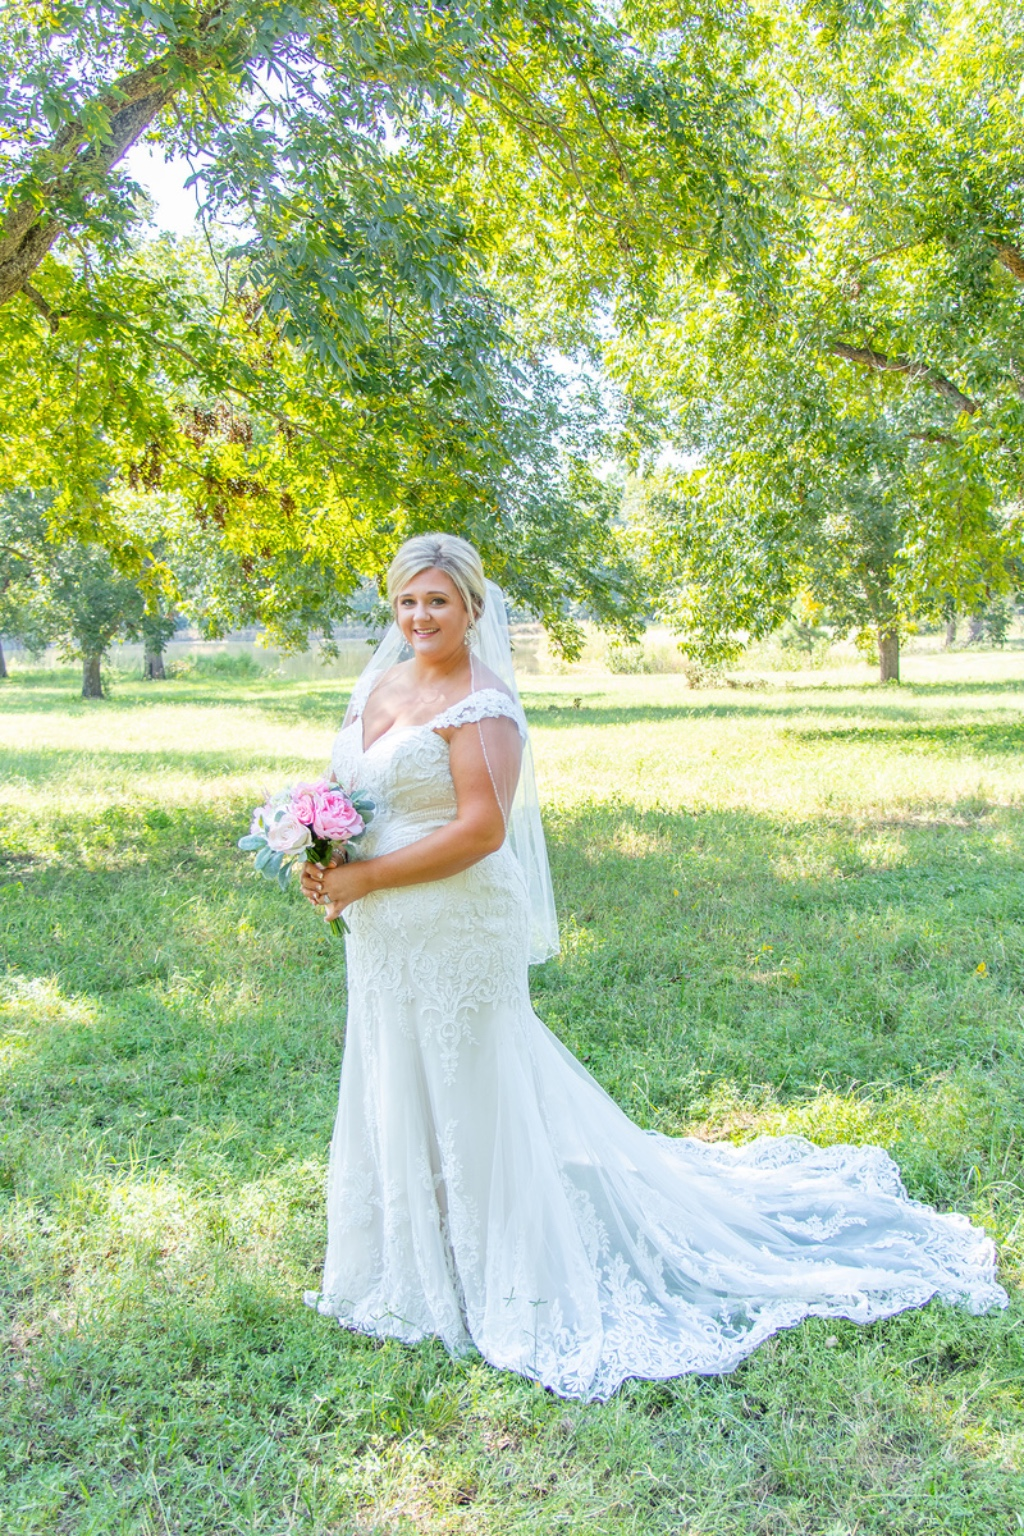 Erin Rollins Photography is a wedding photographer based in Lyons, Georgia. Erin specializes in capturing the elegance, simplicity